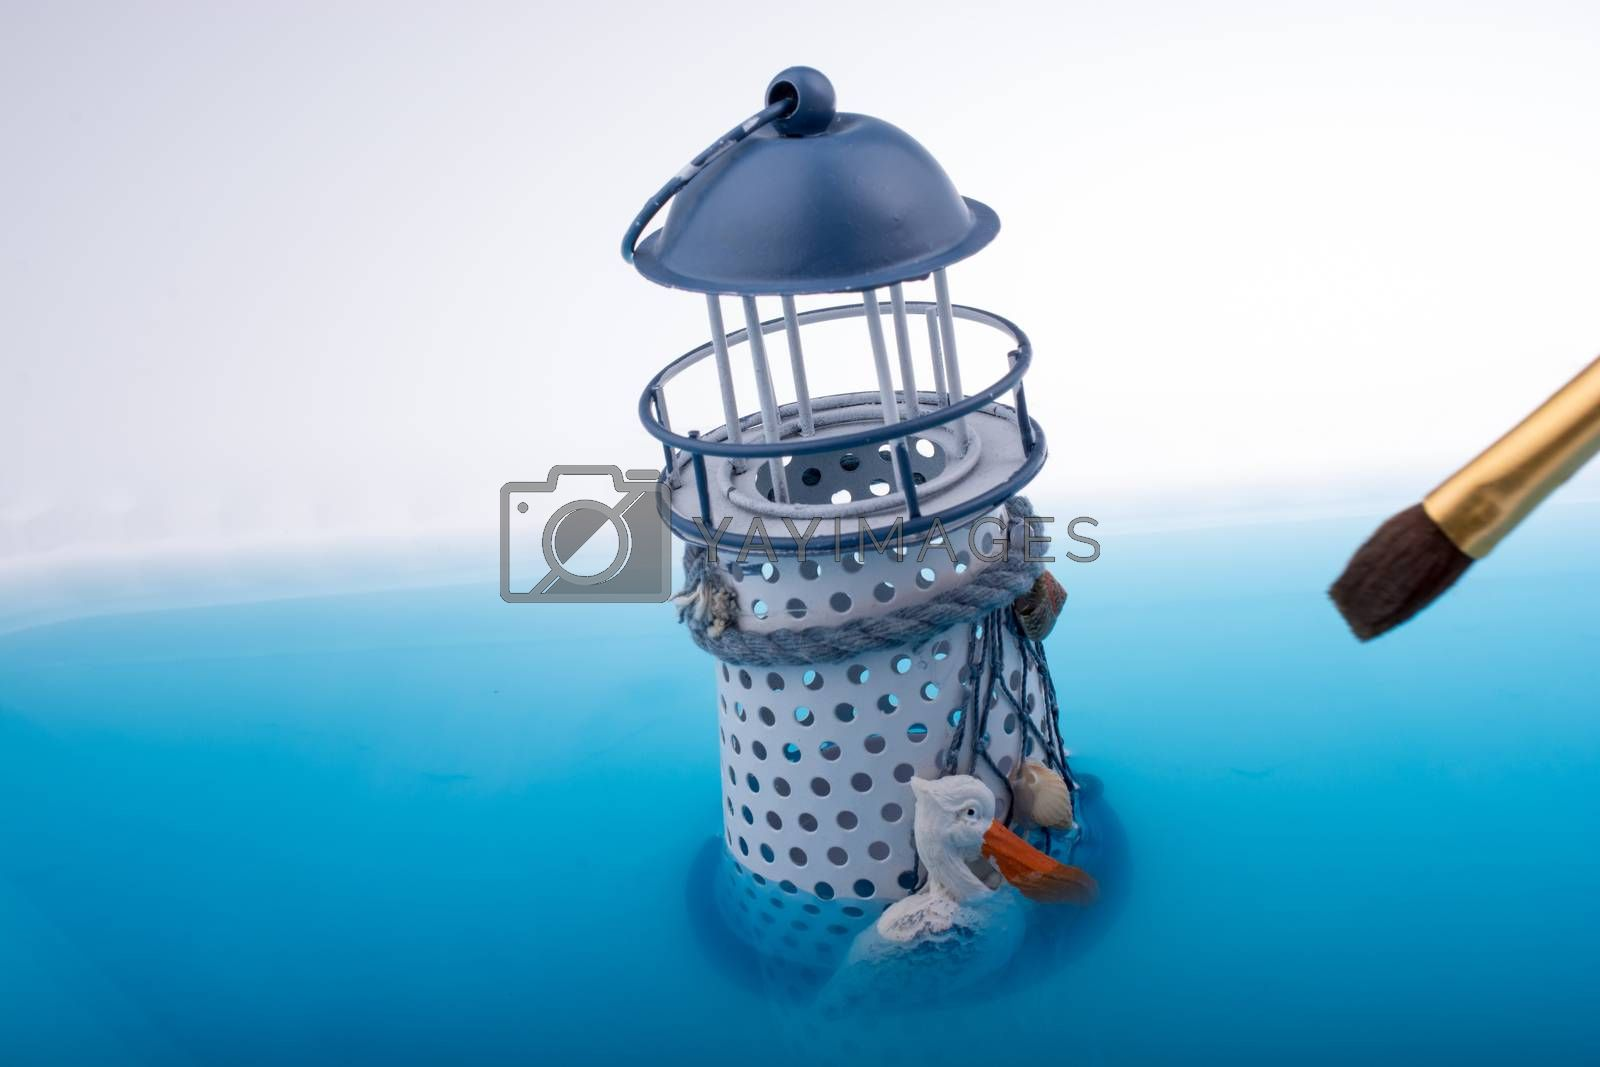 Painting brush and little model lighthouse  placed in blue water